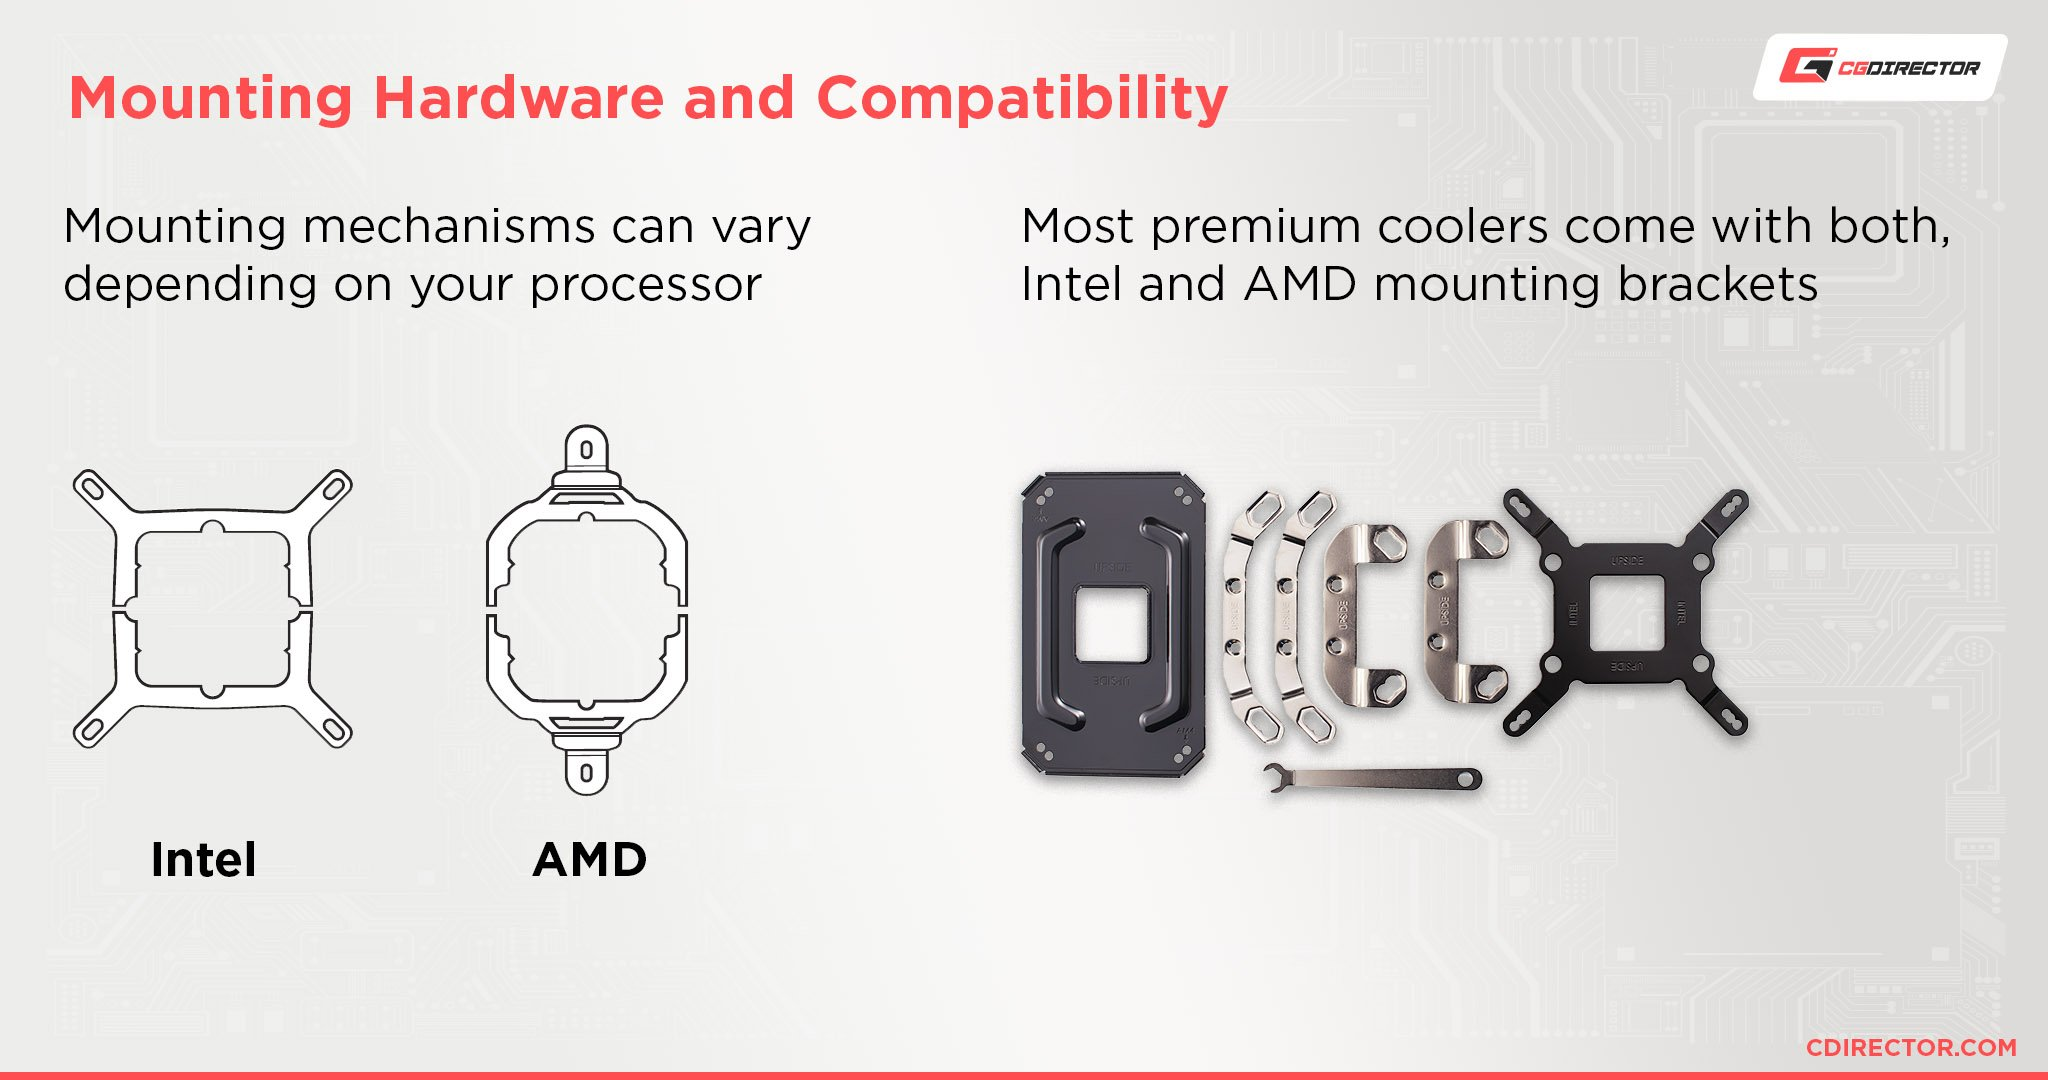 Mounting Hardware and Compatibility